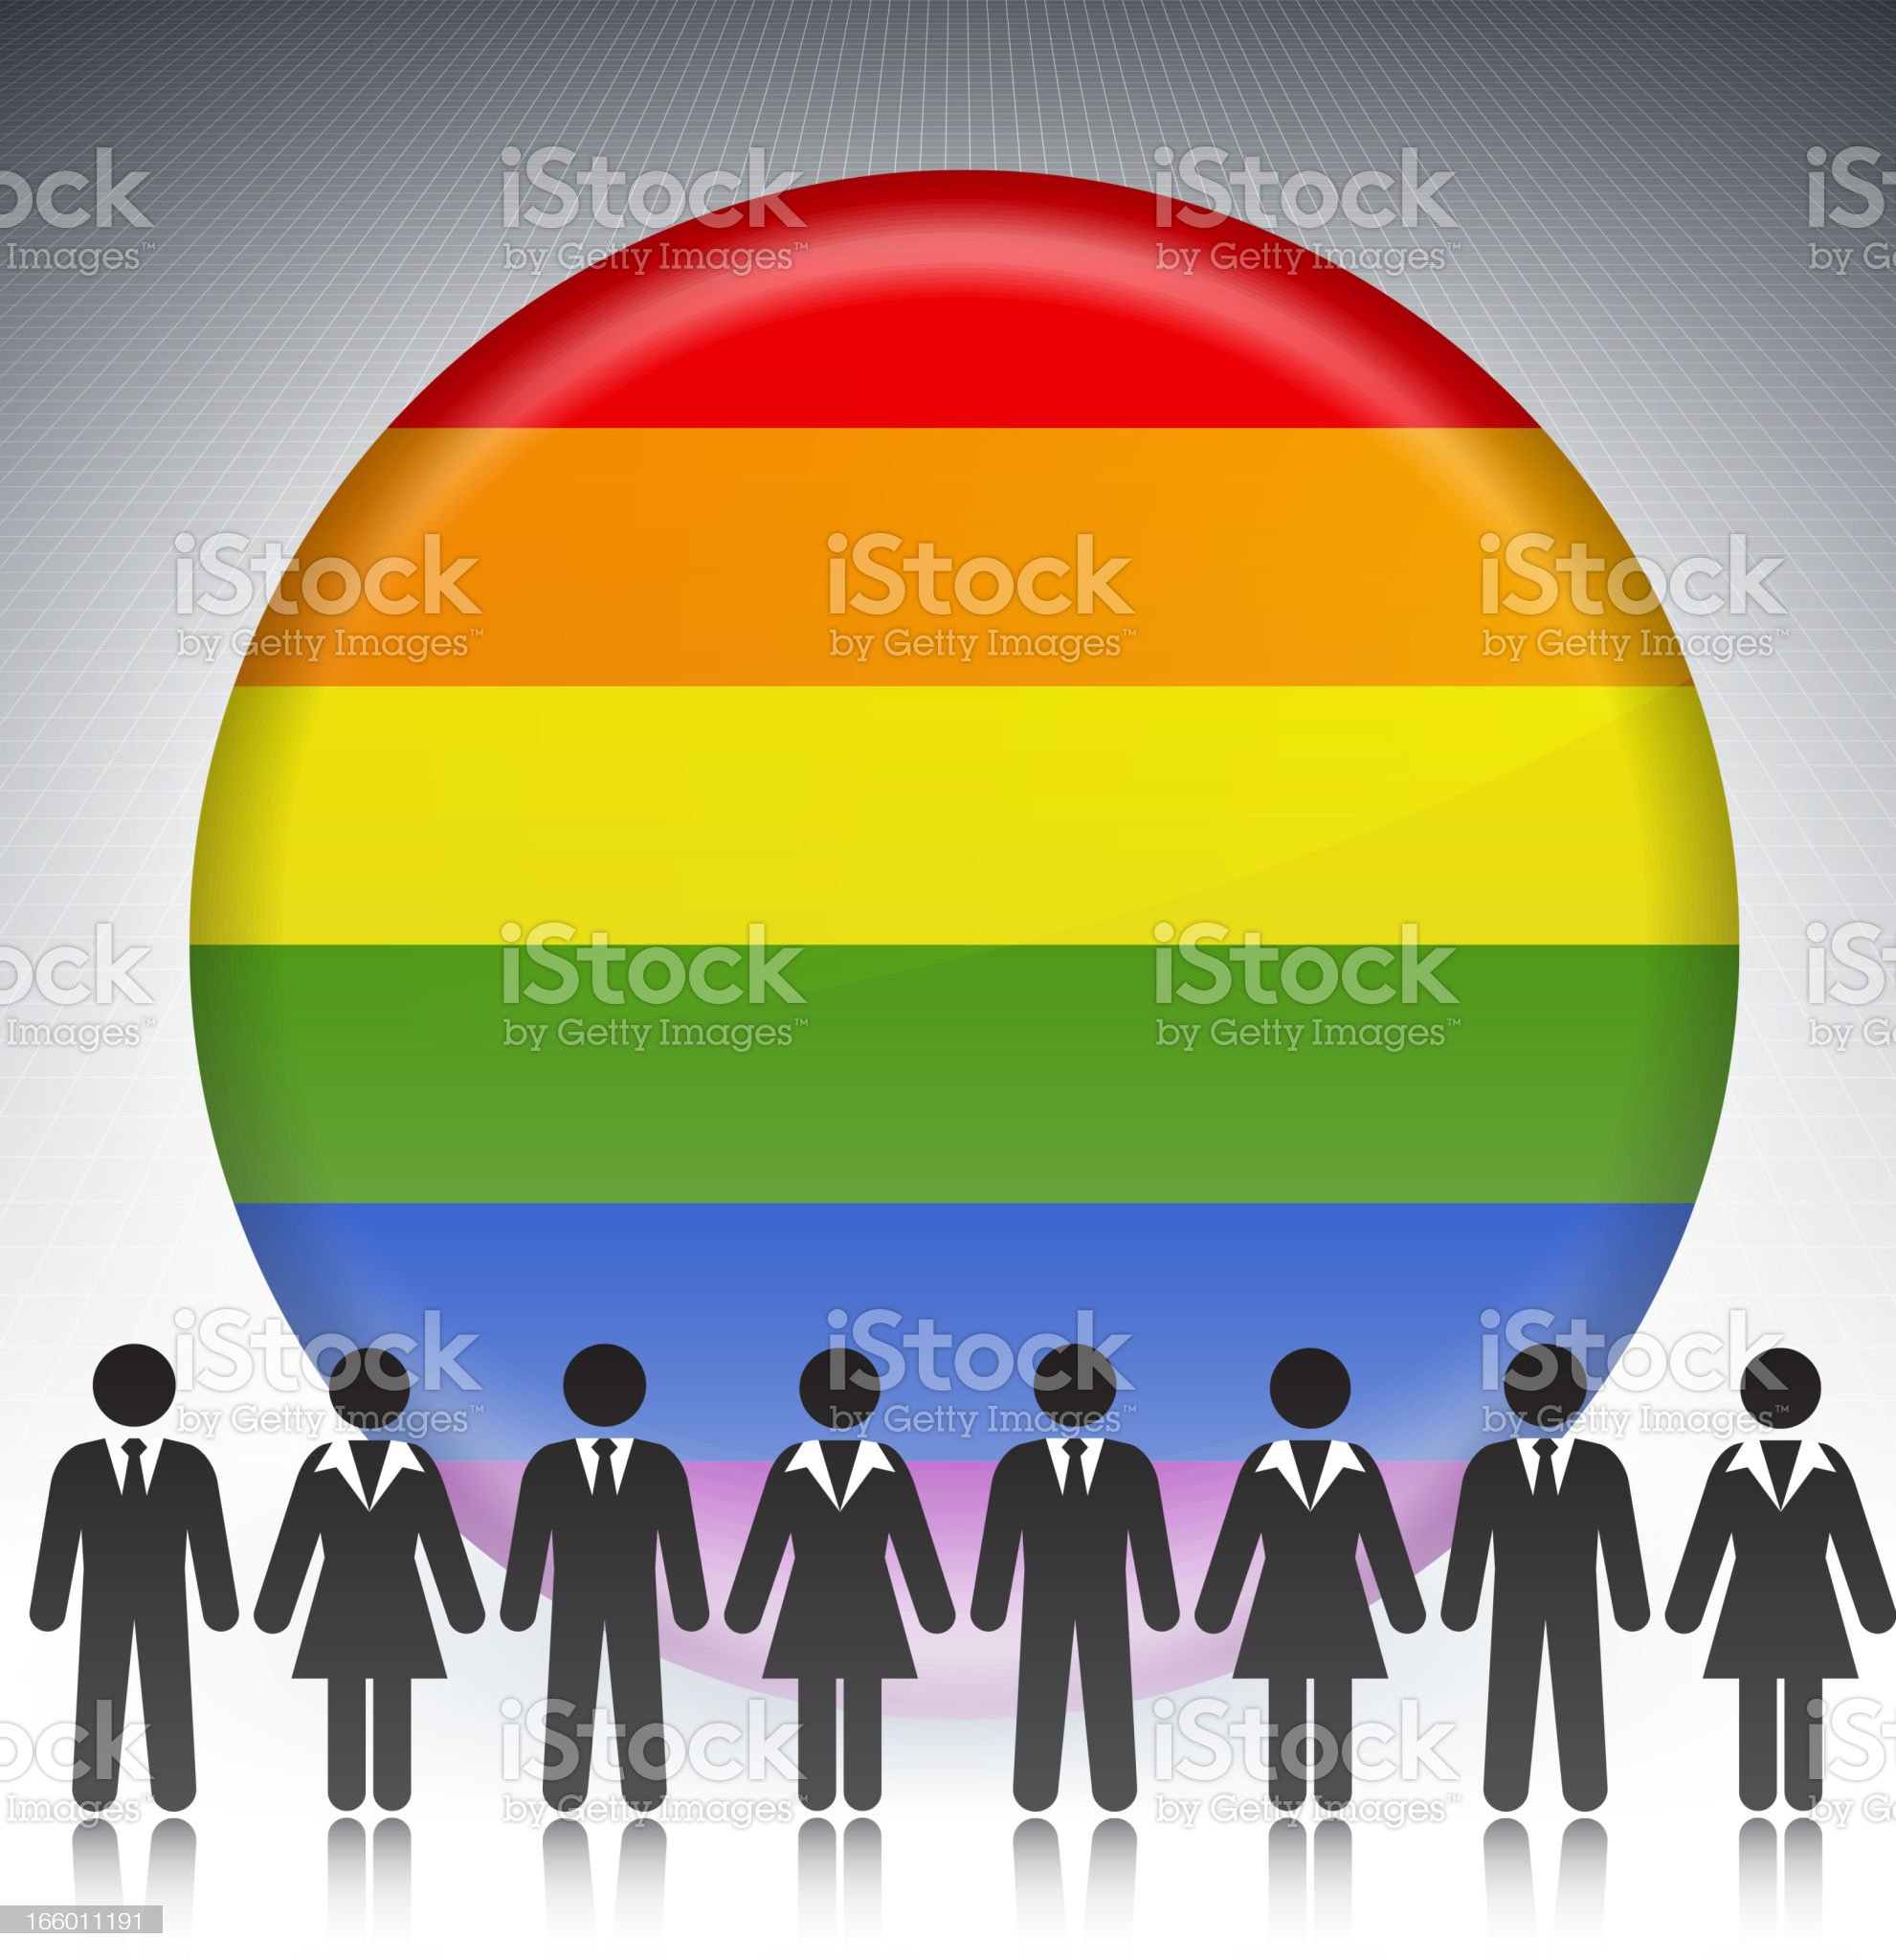 Gay Pride Flag Button with Business Concept Stick Figures royalty-free stock vector art